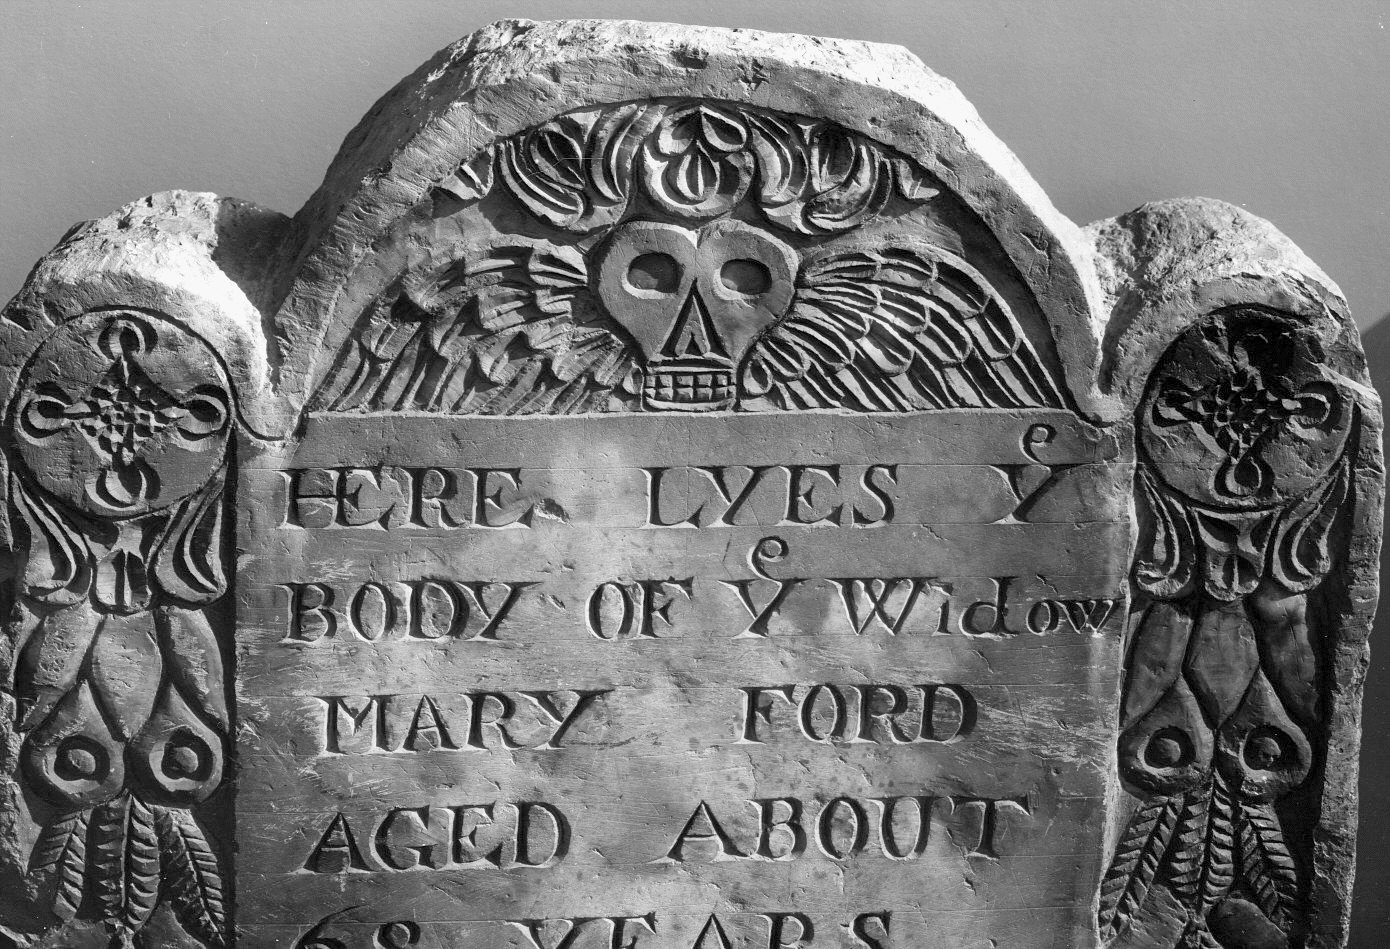 Ford, Mary